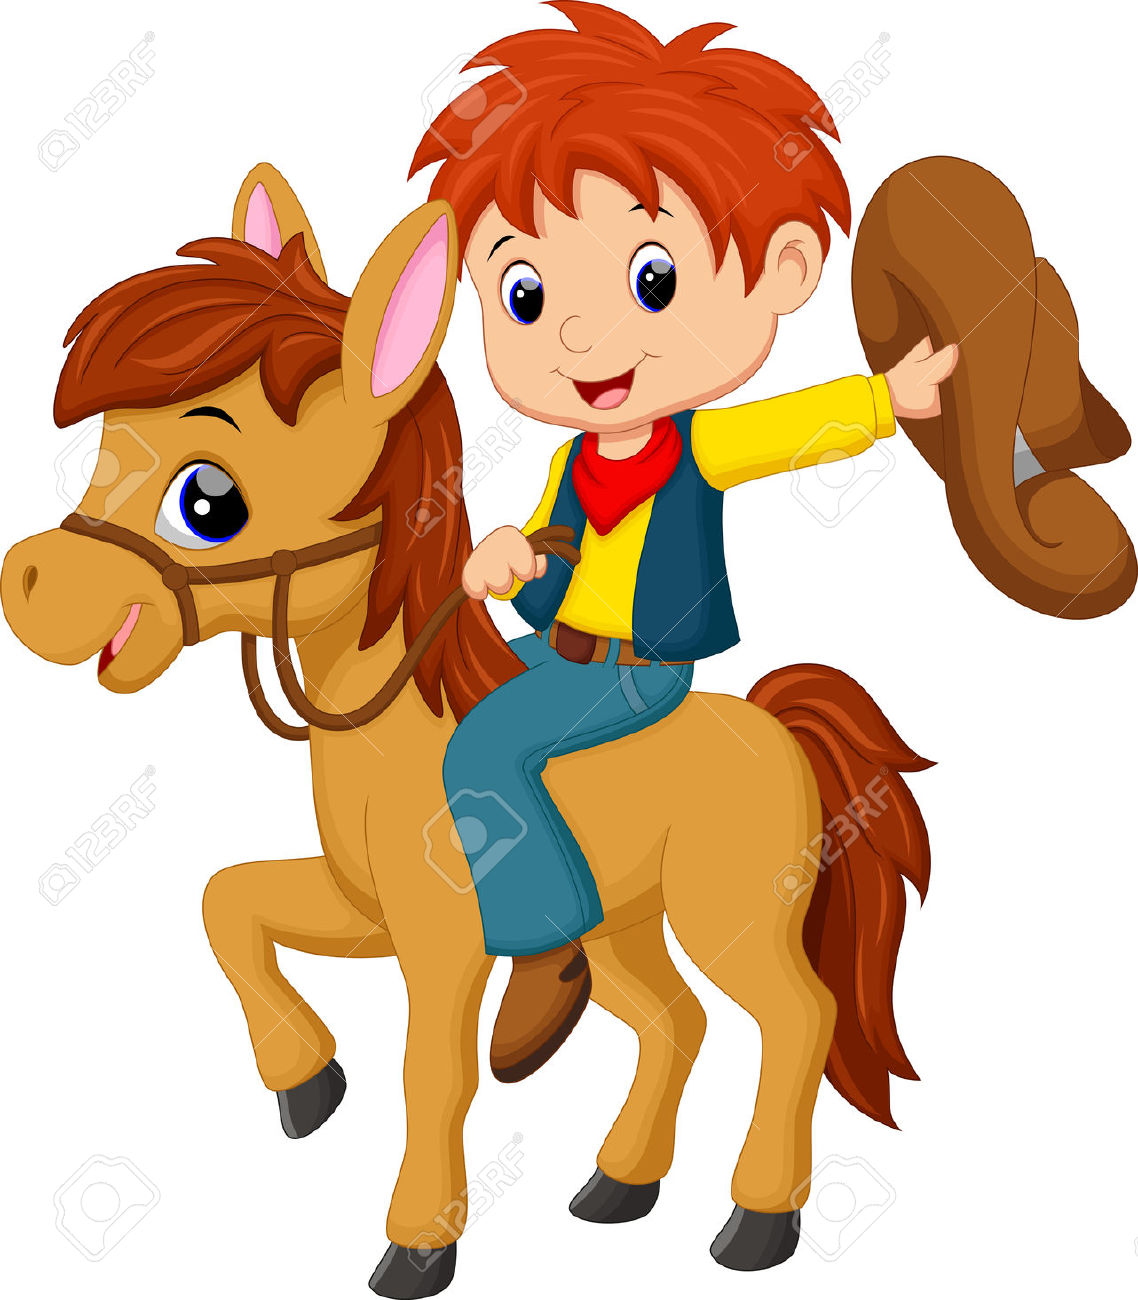 to ride a horse clipart - Clipground